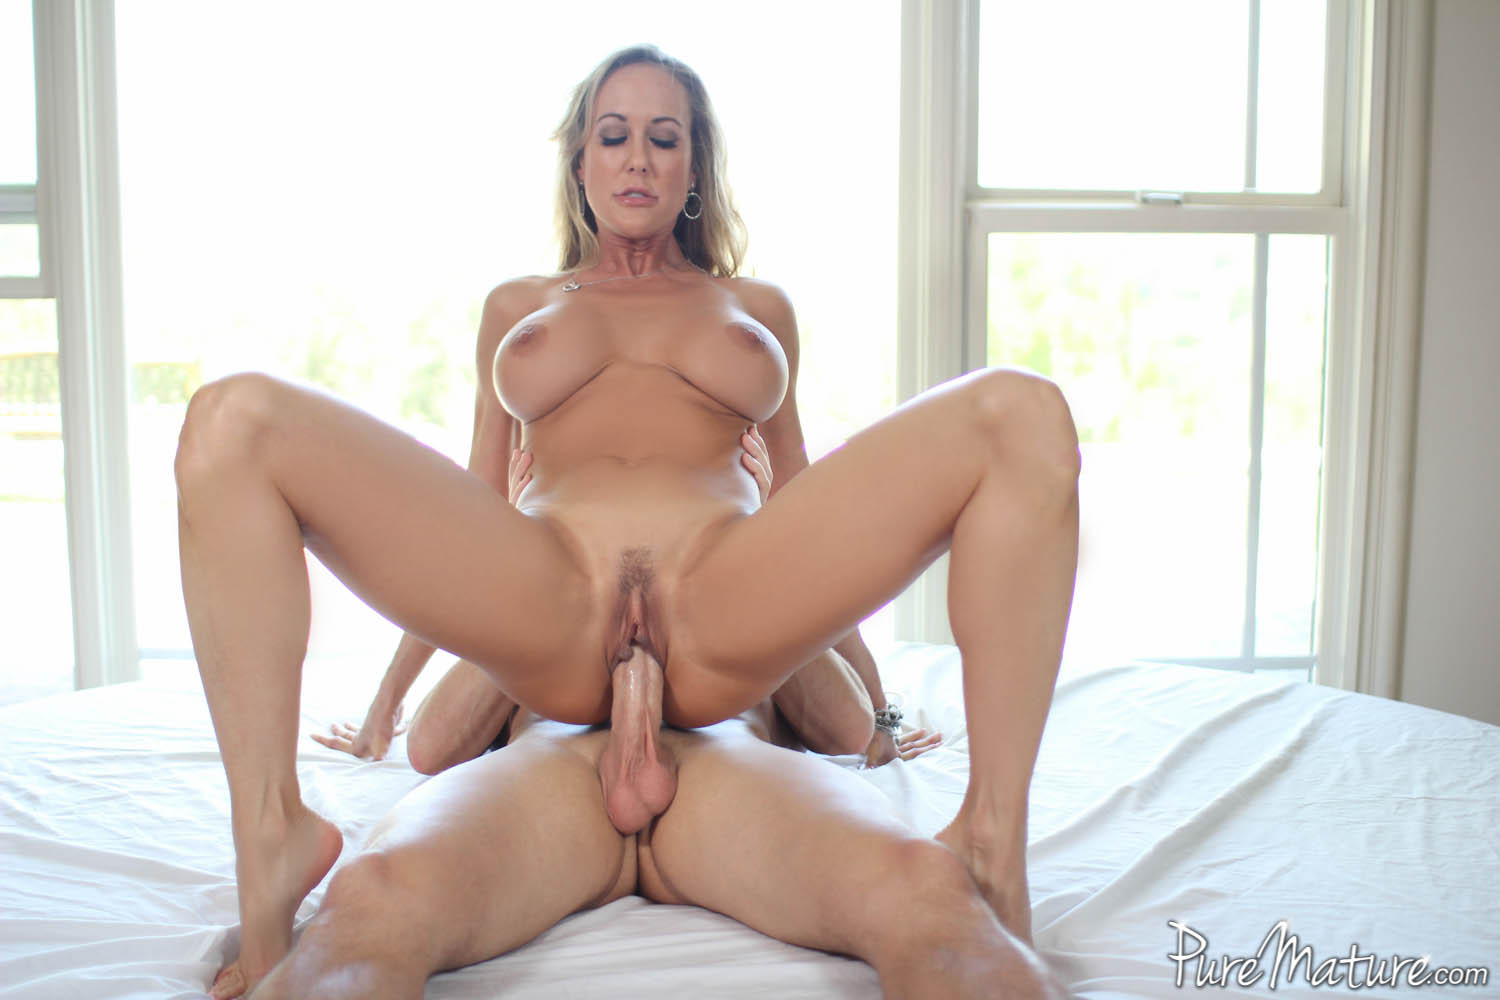 Opinion Brandi love milf porn pictures free something